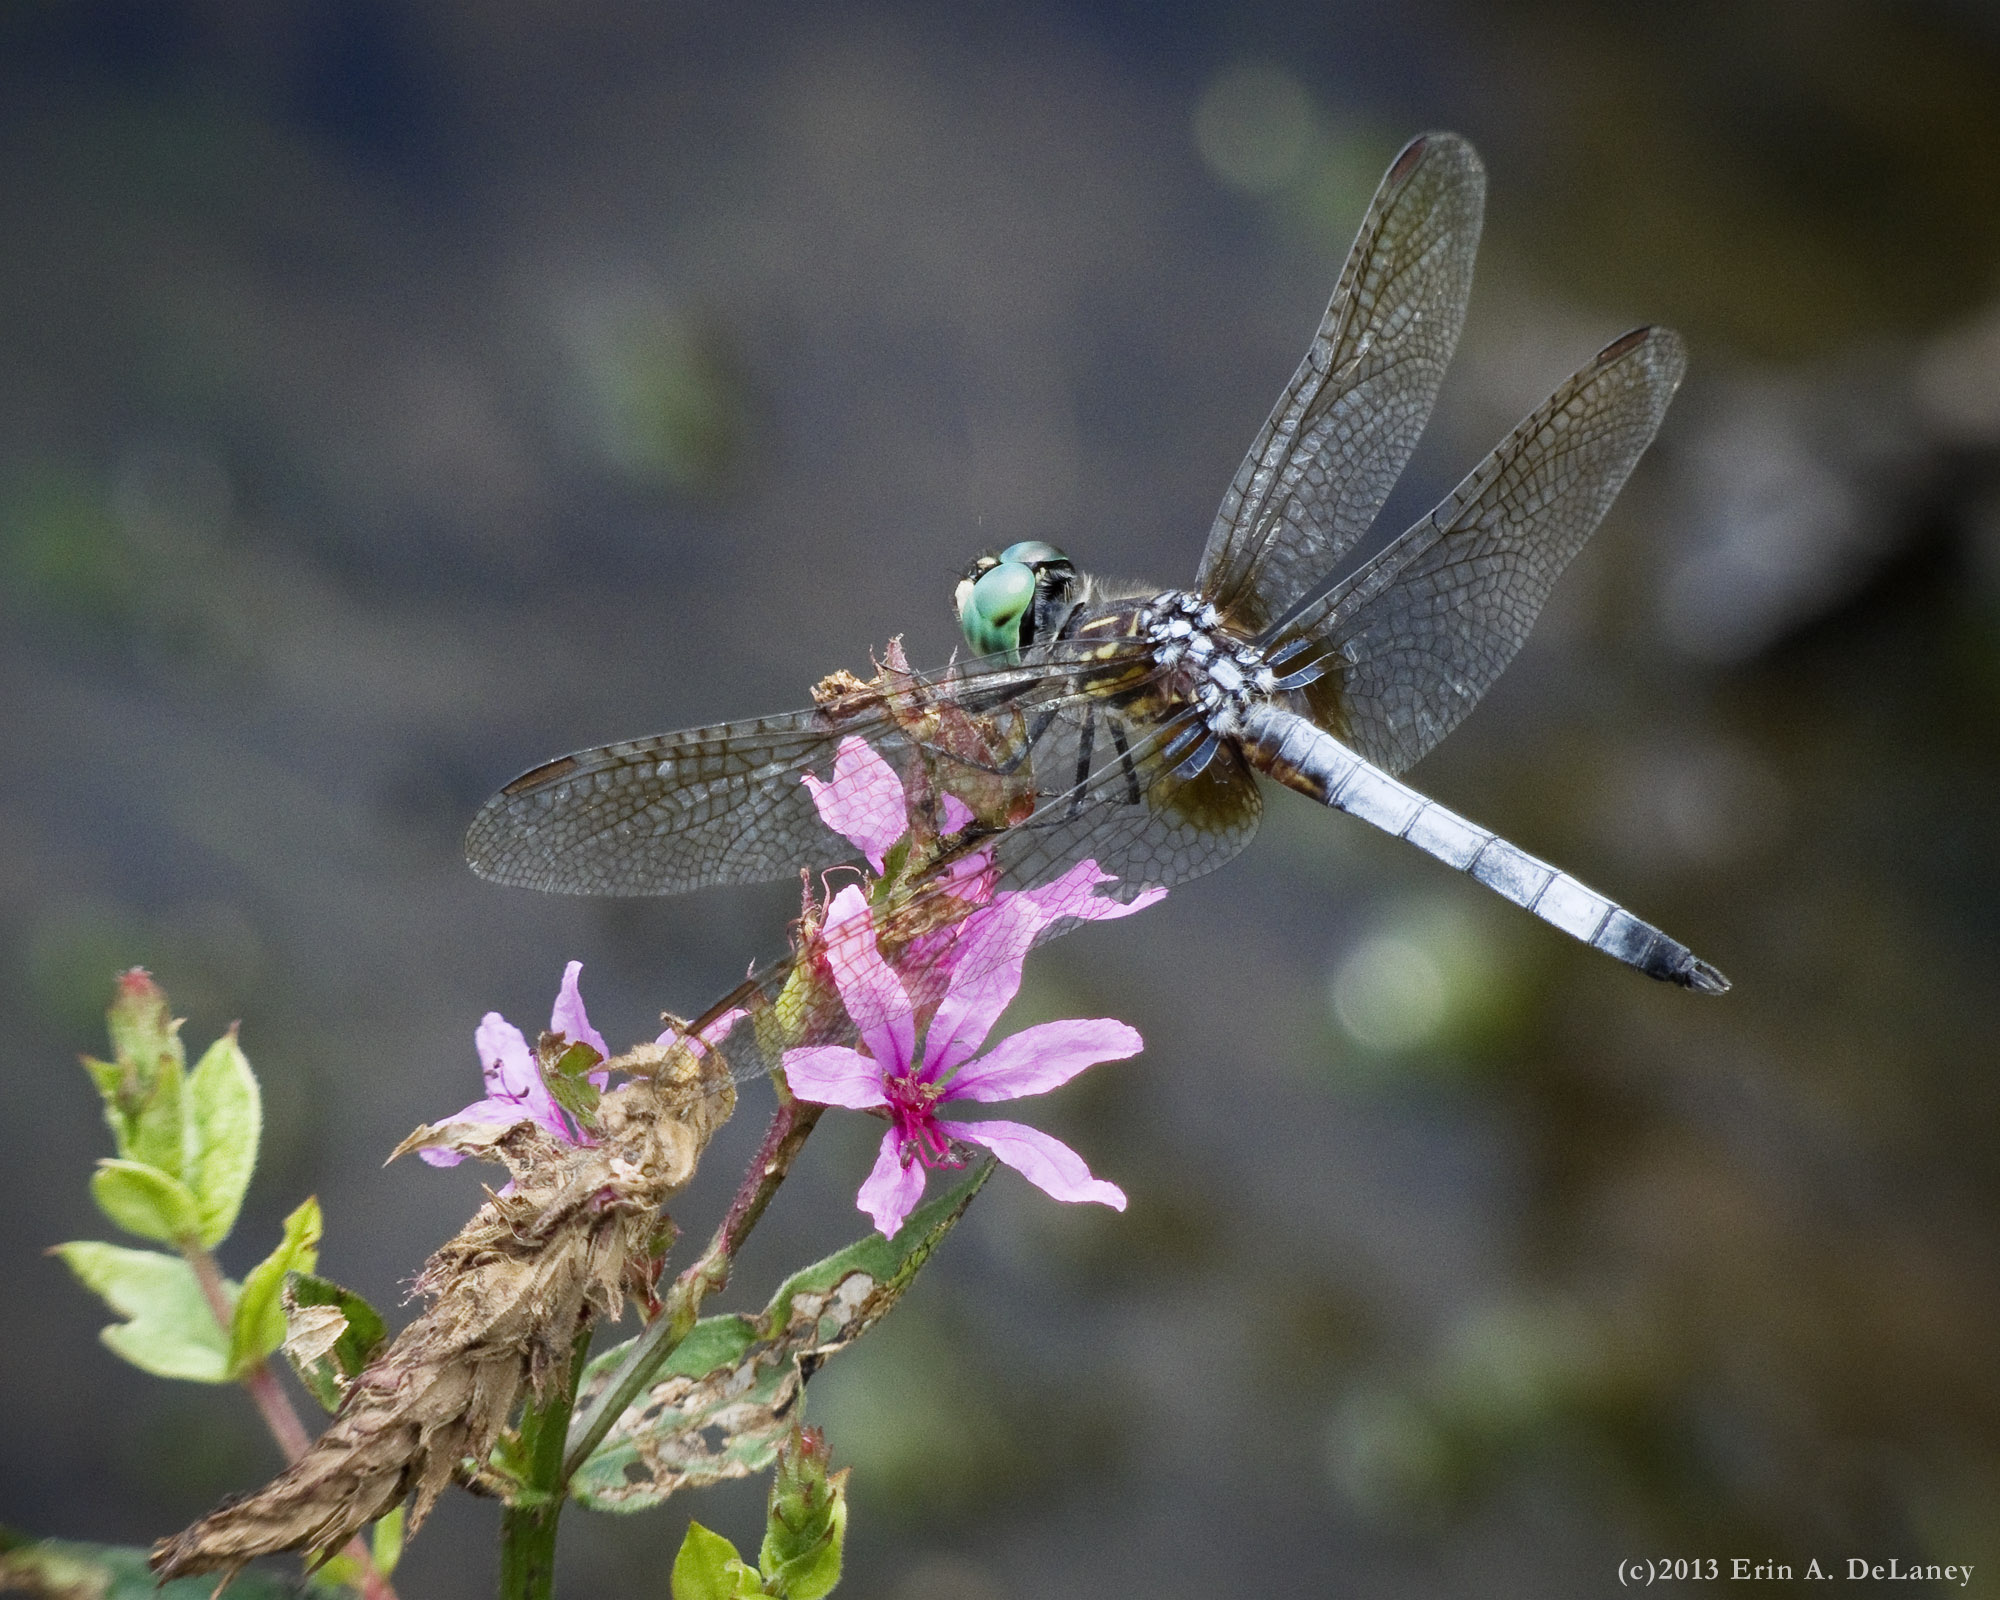 Blue Dasher Dragonfly on Purple Loosestrife, 2013